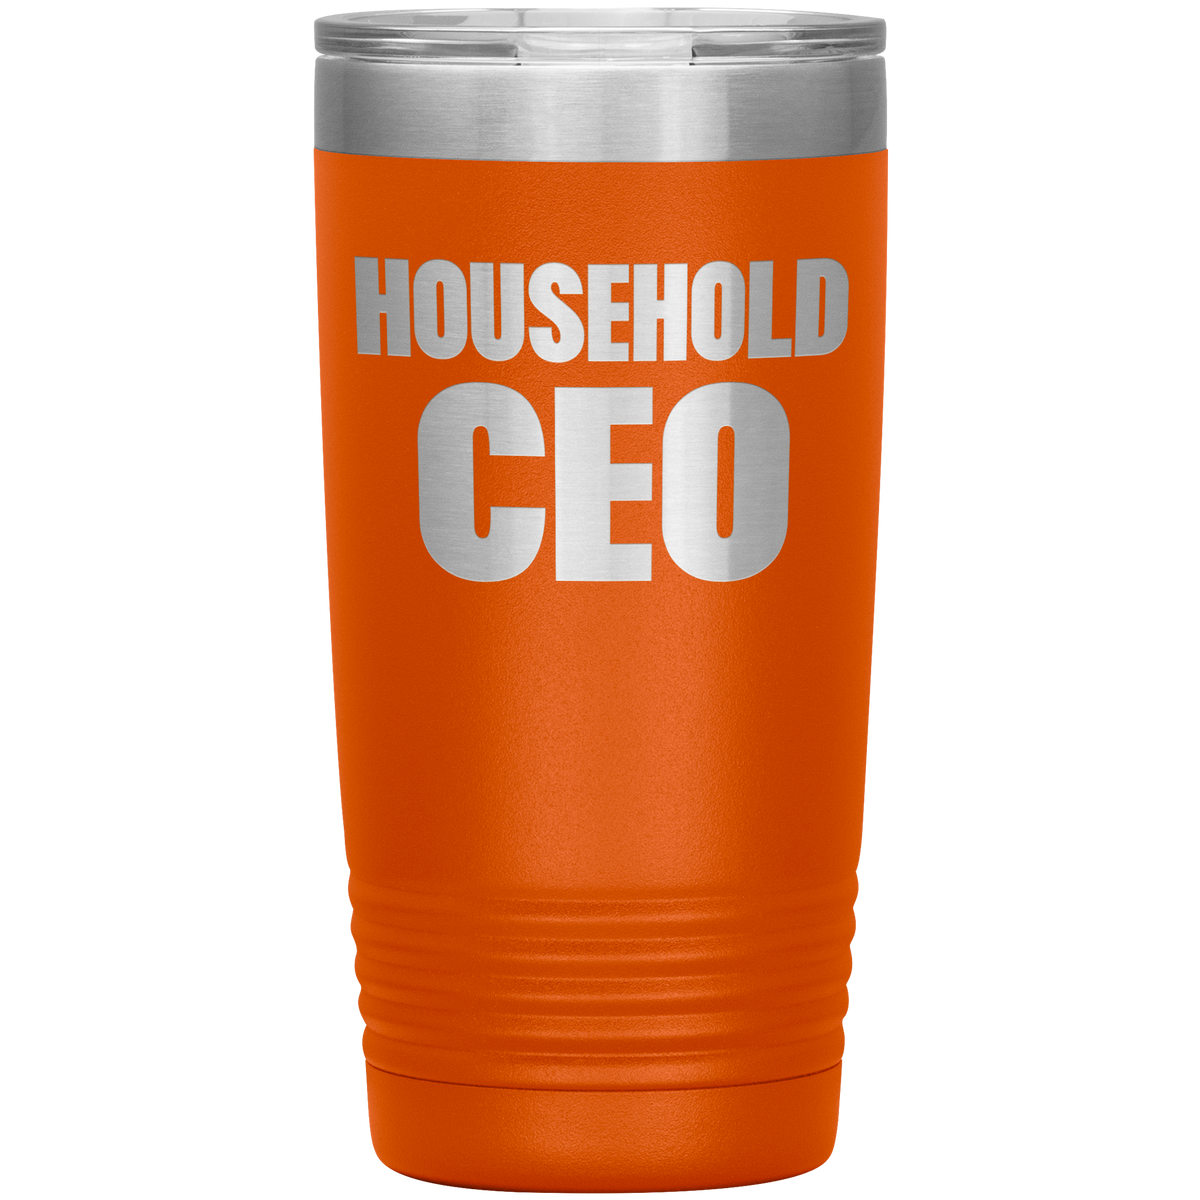 Household CEO Tumbler 20 oz